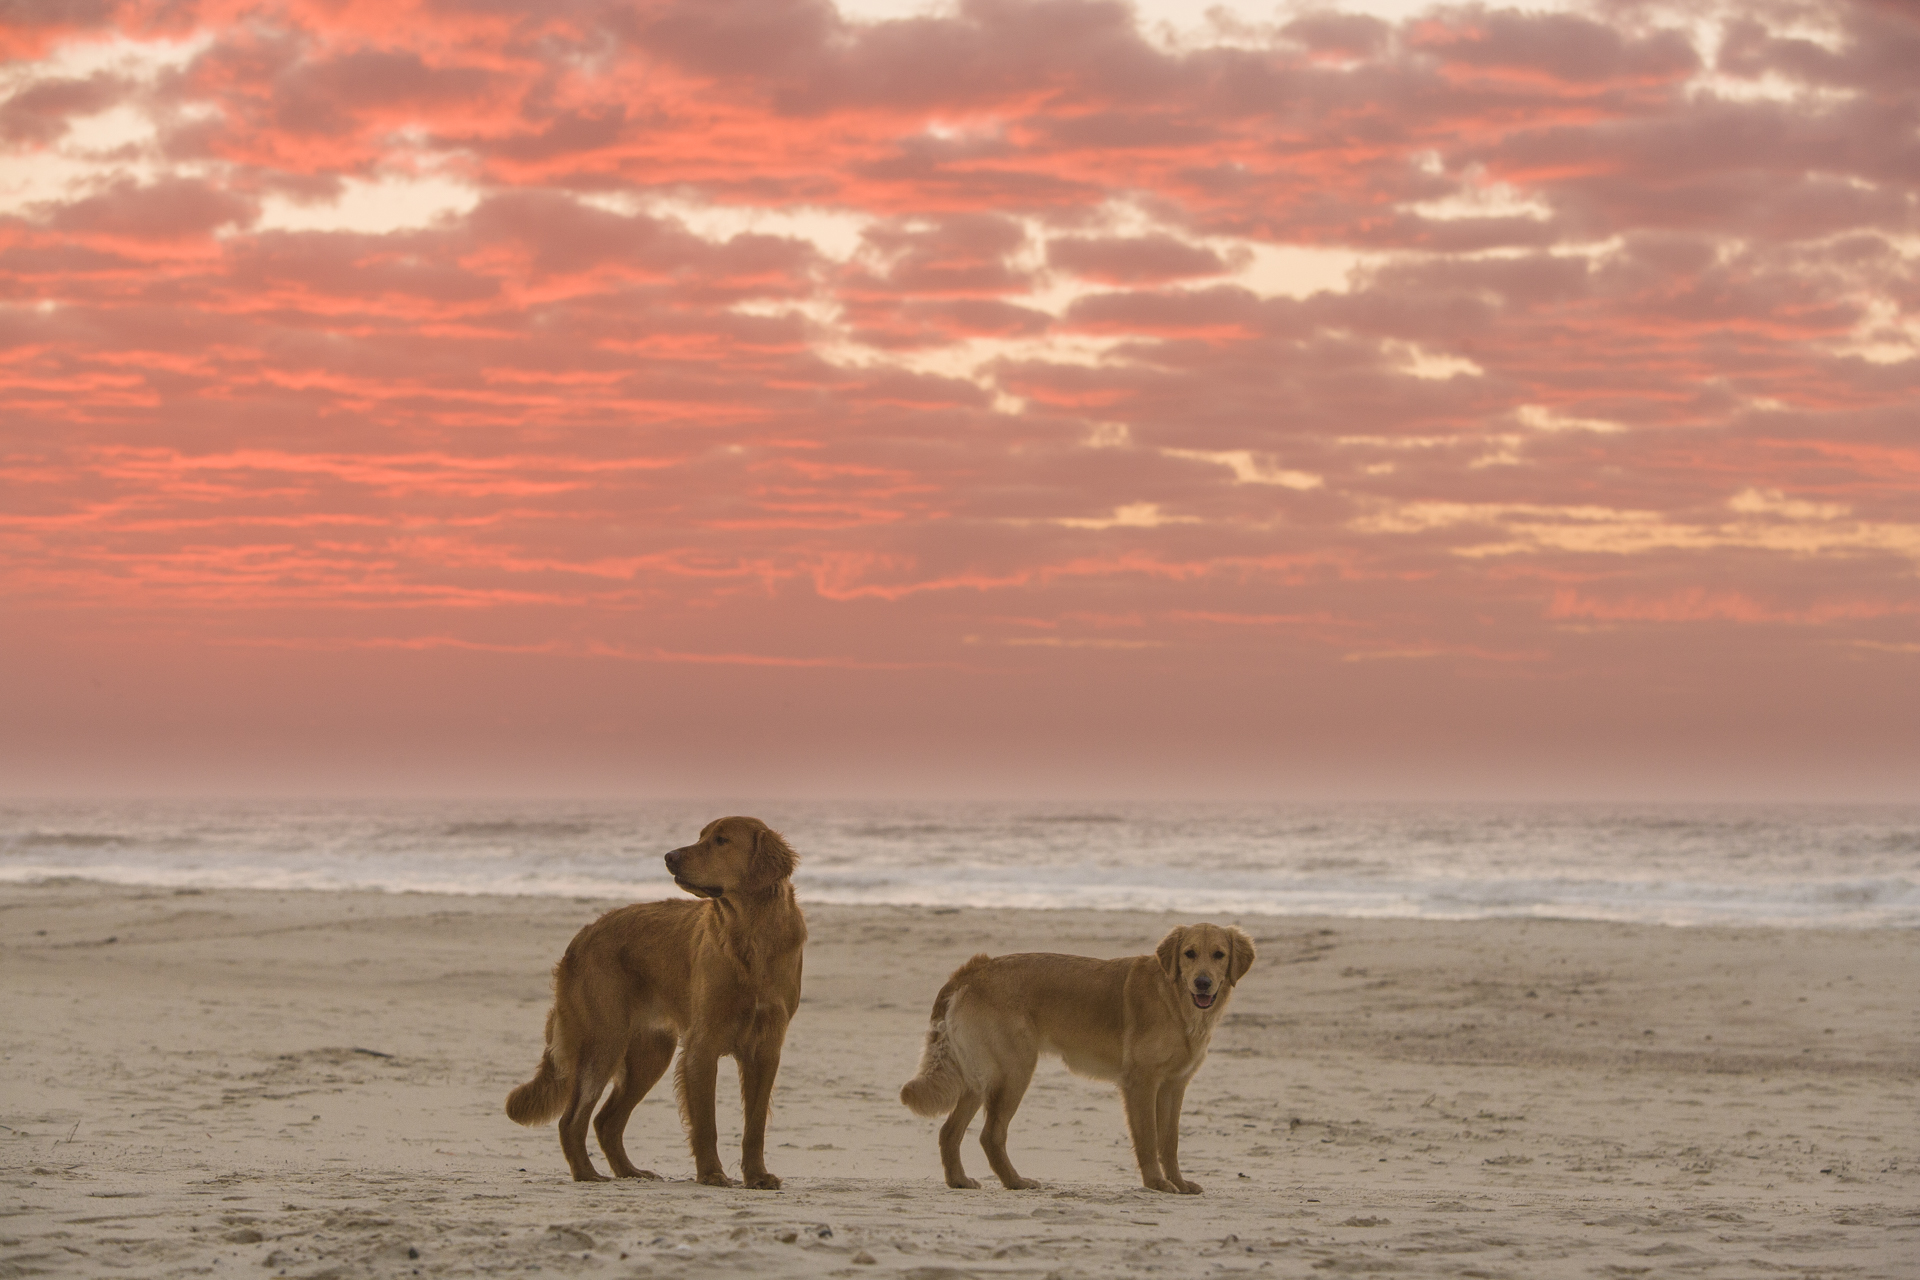 Golden Retriever Jasper, 22-month-old and LuLu, 9-month-old, watch sunrise along a shore at Fort Morgan Beach in Alabama.